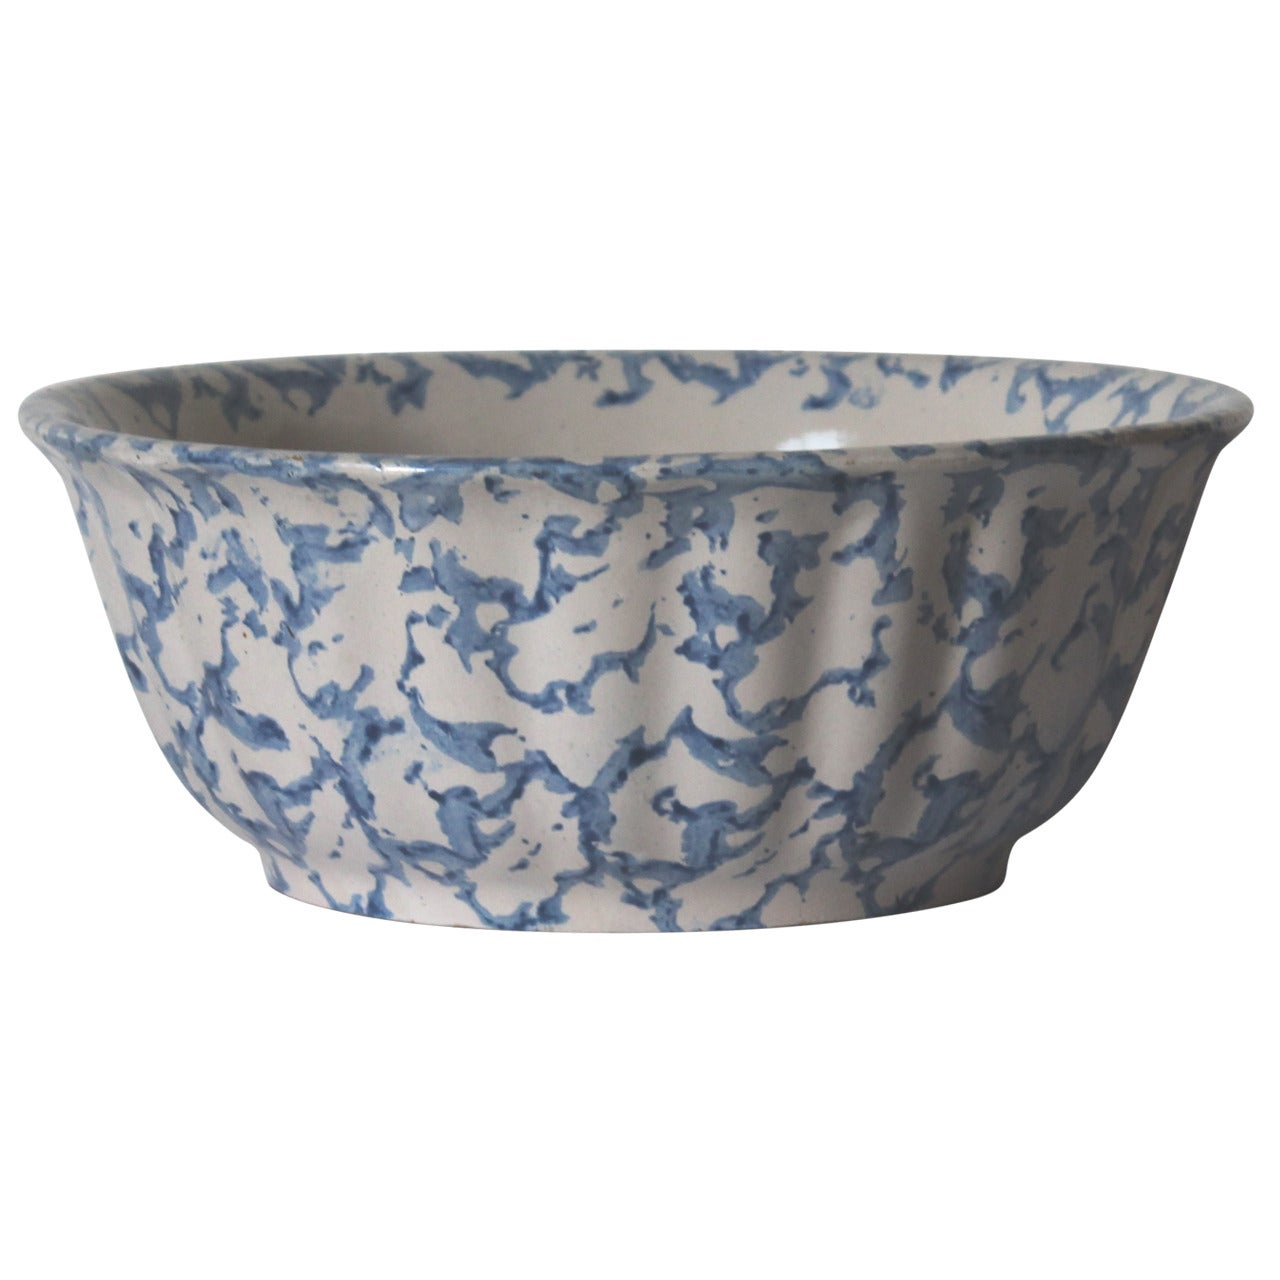 19th Century Large Sponge Ware Serving Bowl